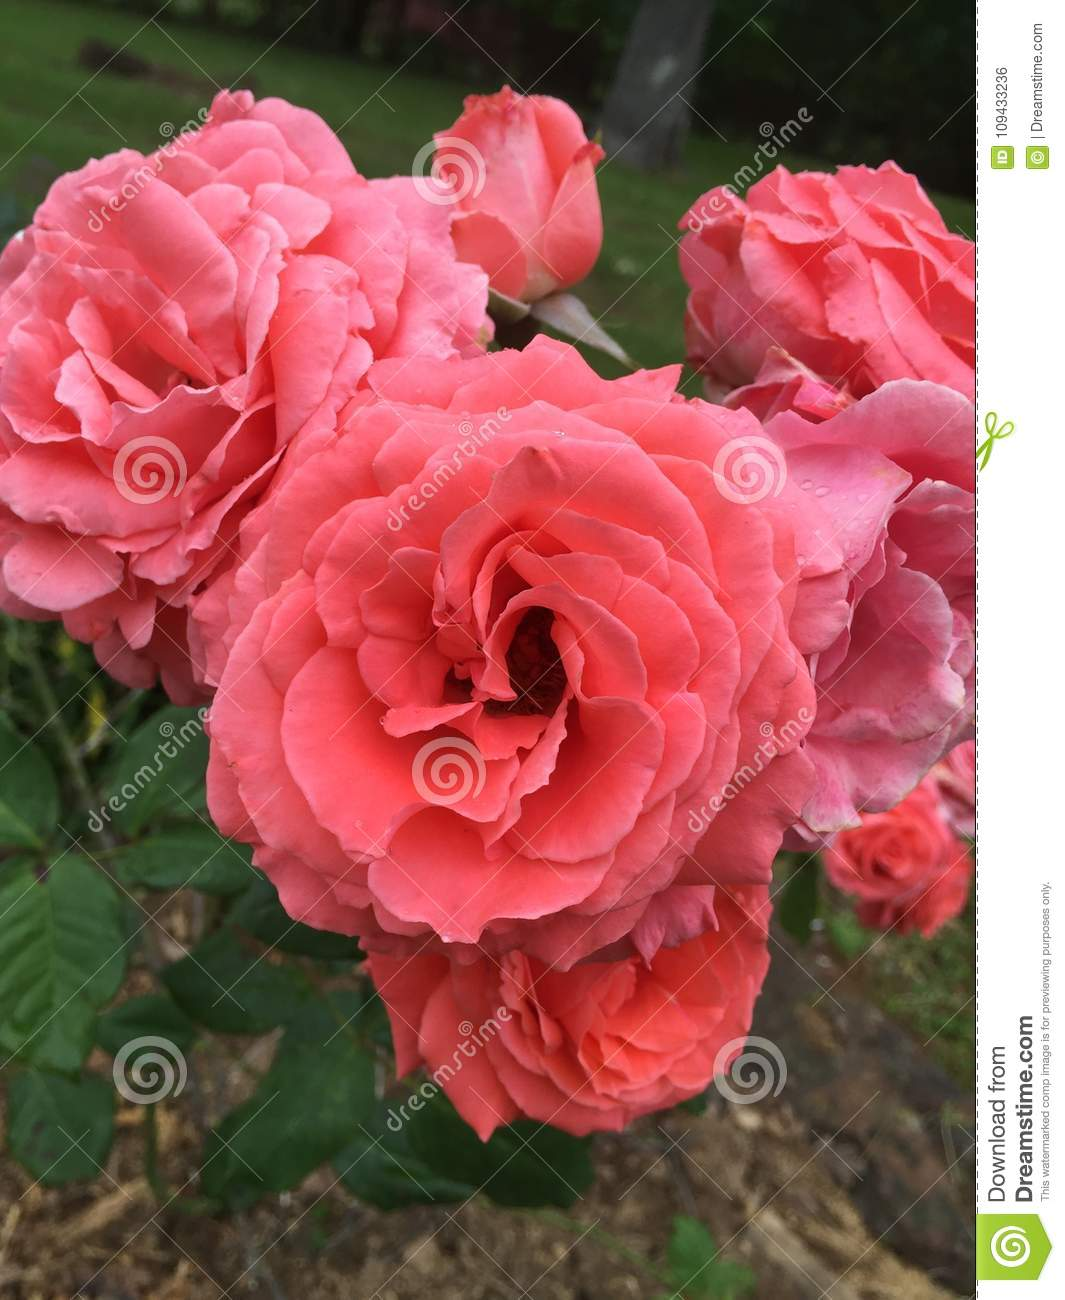 Blooming roses in a bouquet